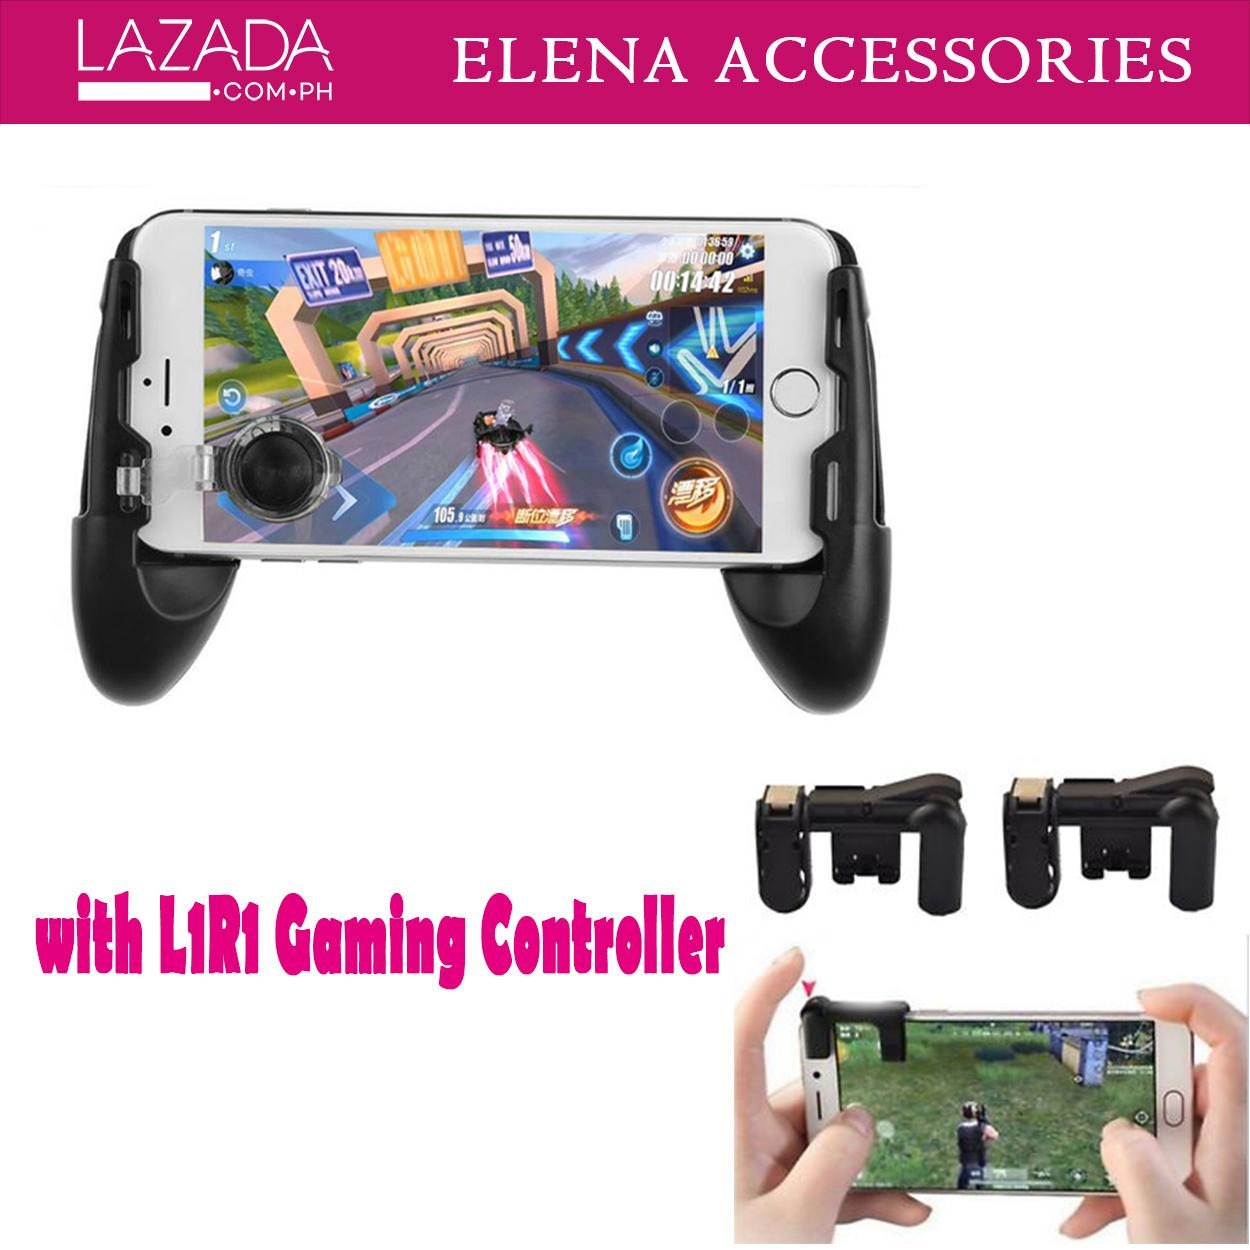 Gamepad for Smartphones Black  Adjustable Mobile Movement  3 in 1 Built-in Bracket Gaming JL-01 Controller Joystick Gamepad with L1R1 Gaming Fire Shooter Controller